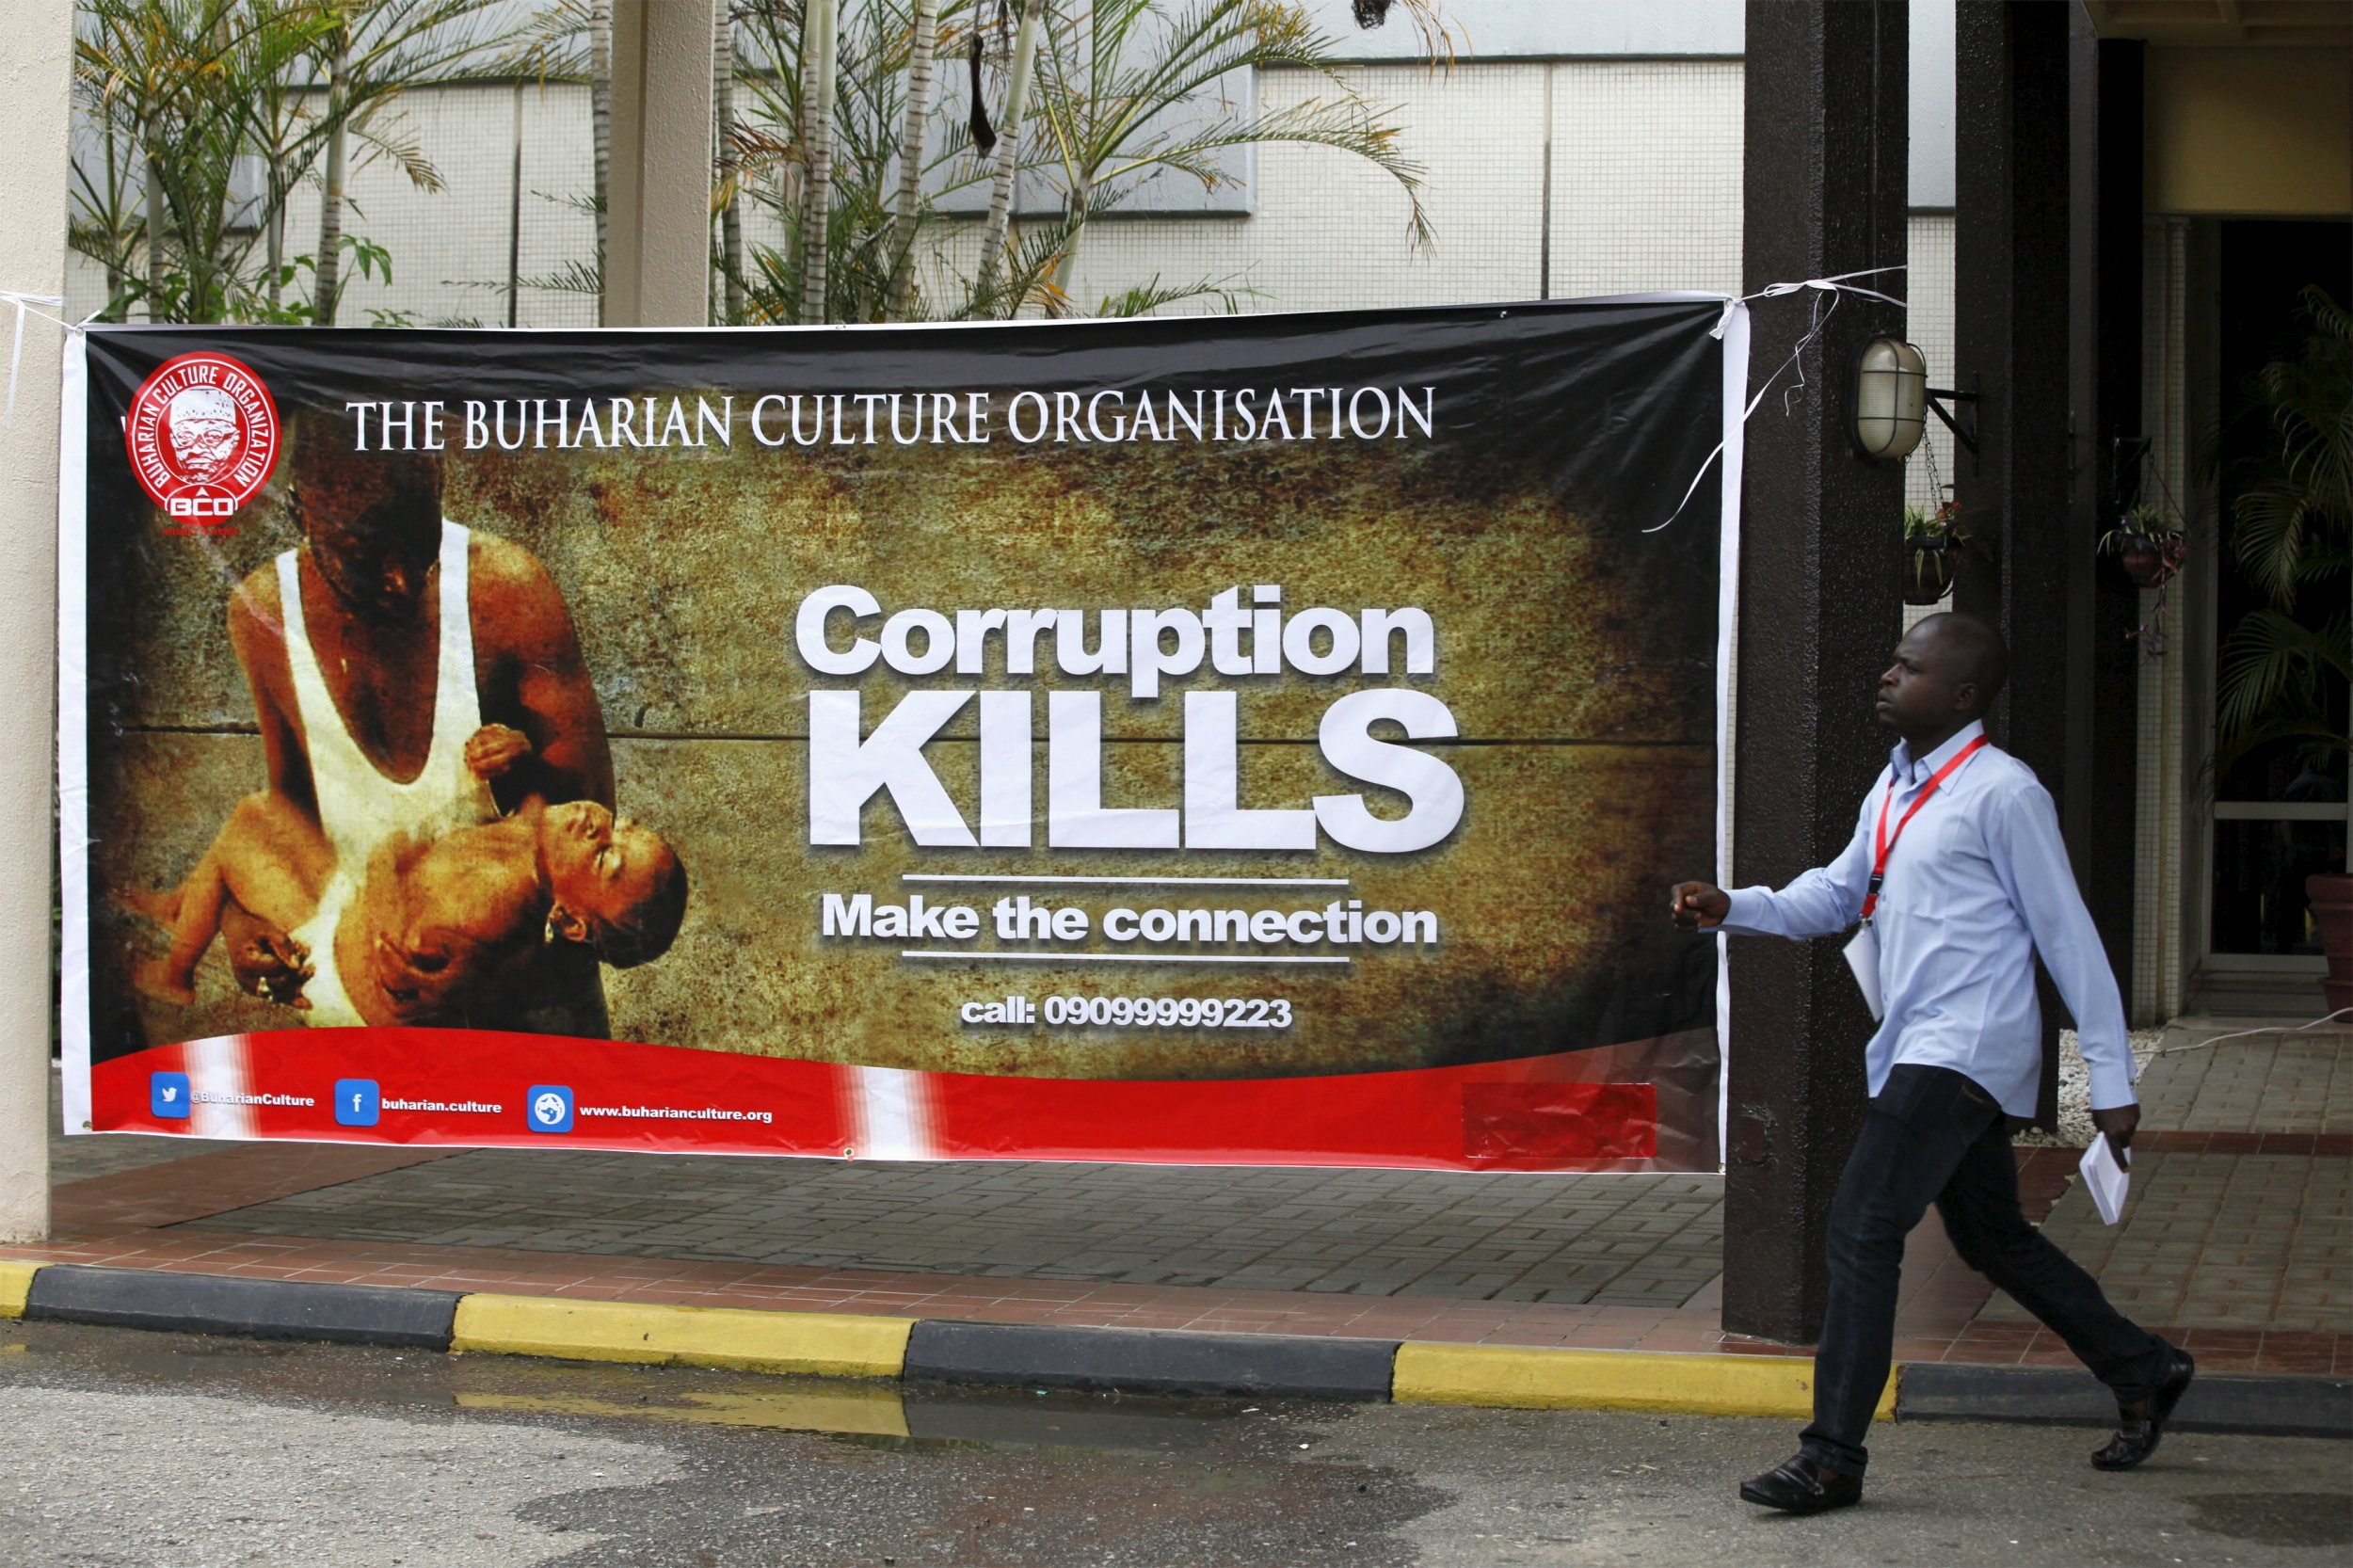 A man arrives at a meeting of an anti-corruption group inspired by President Buhari in Nigeria.